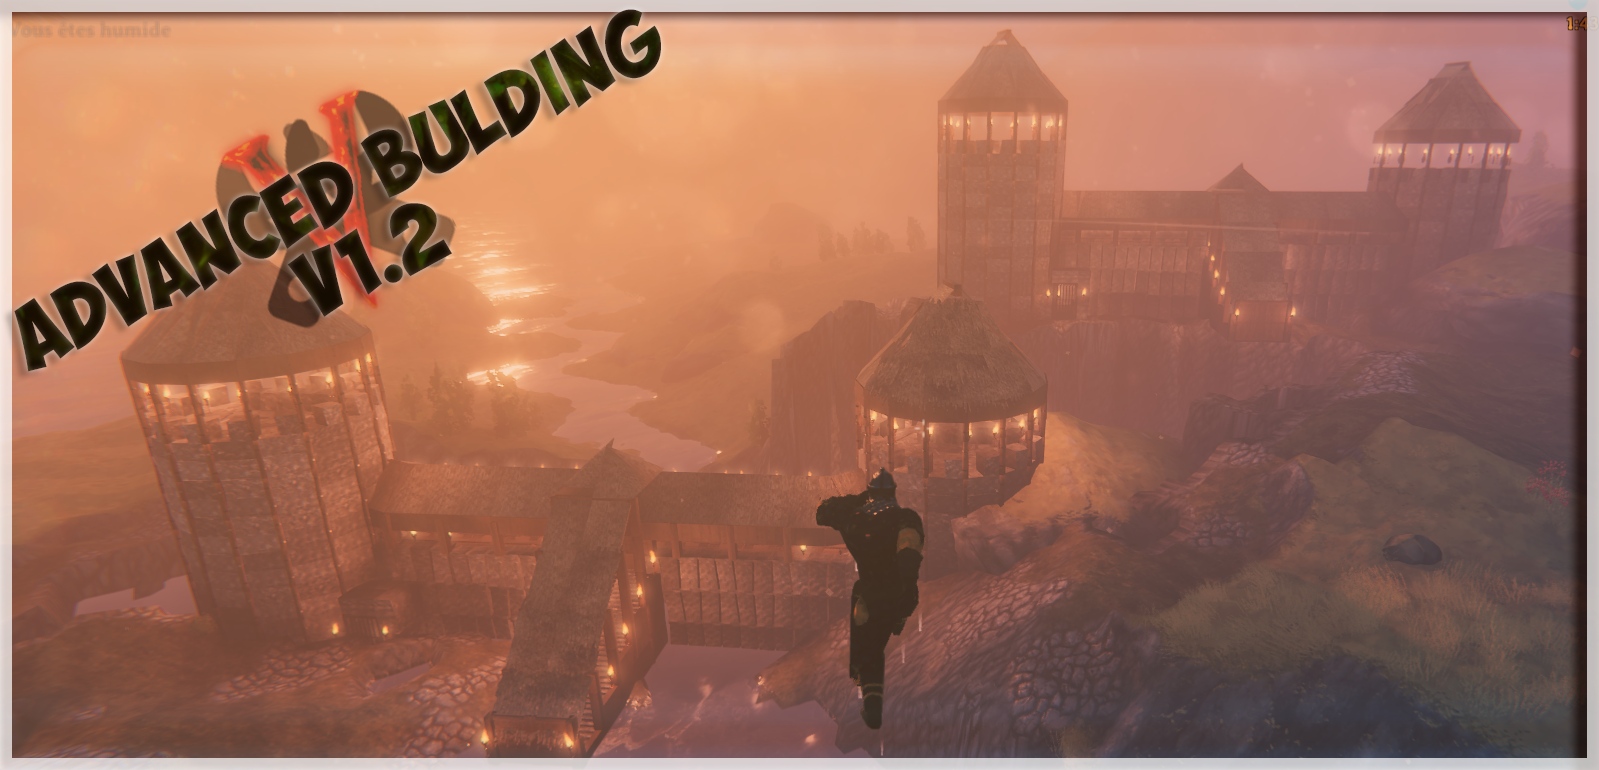 BuildShare (AdvancedBuilding) - saving and loading buildings